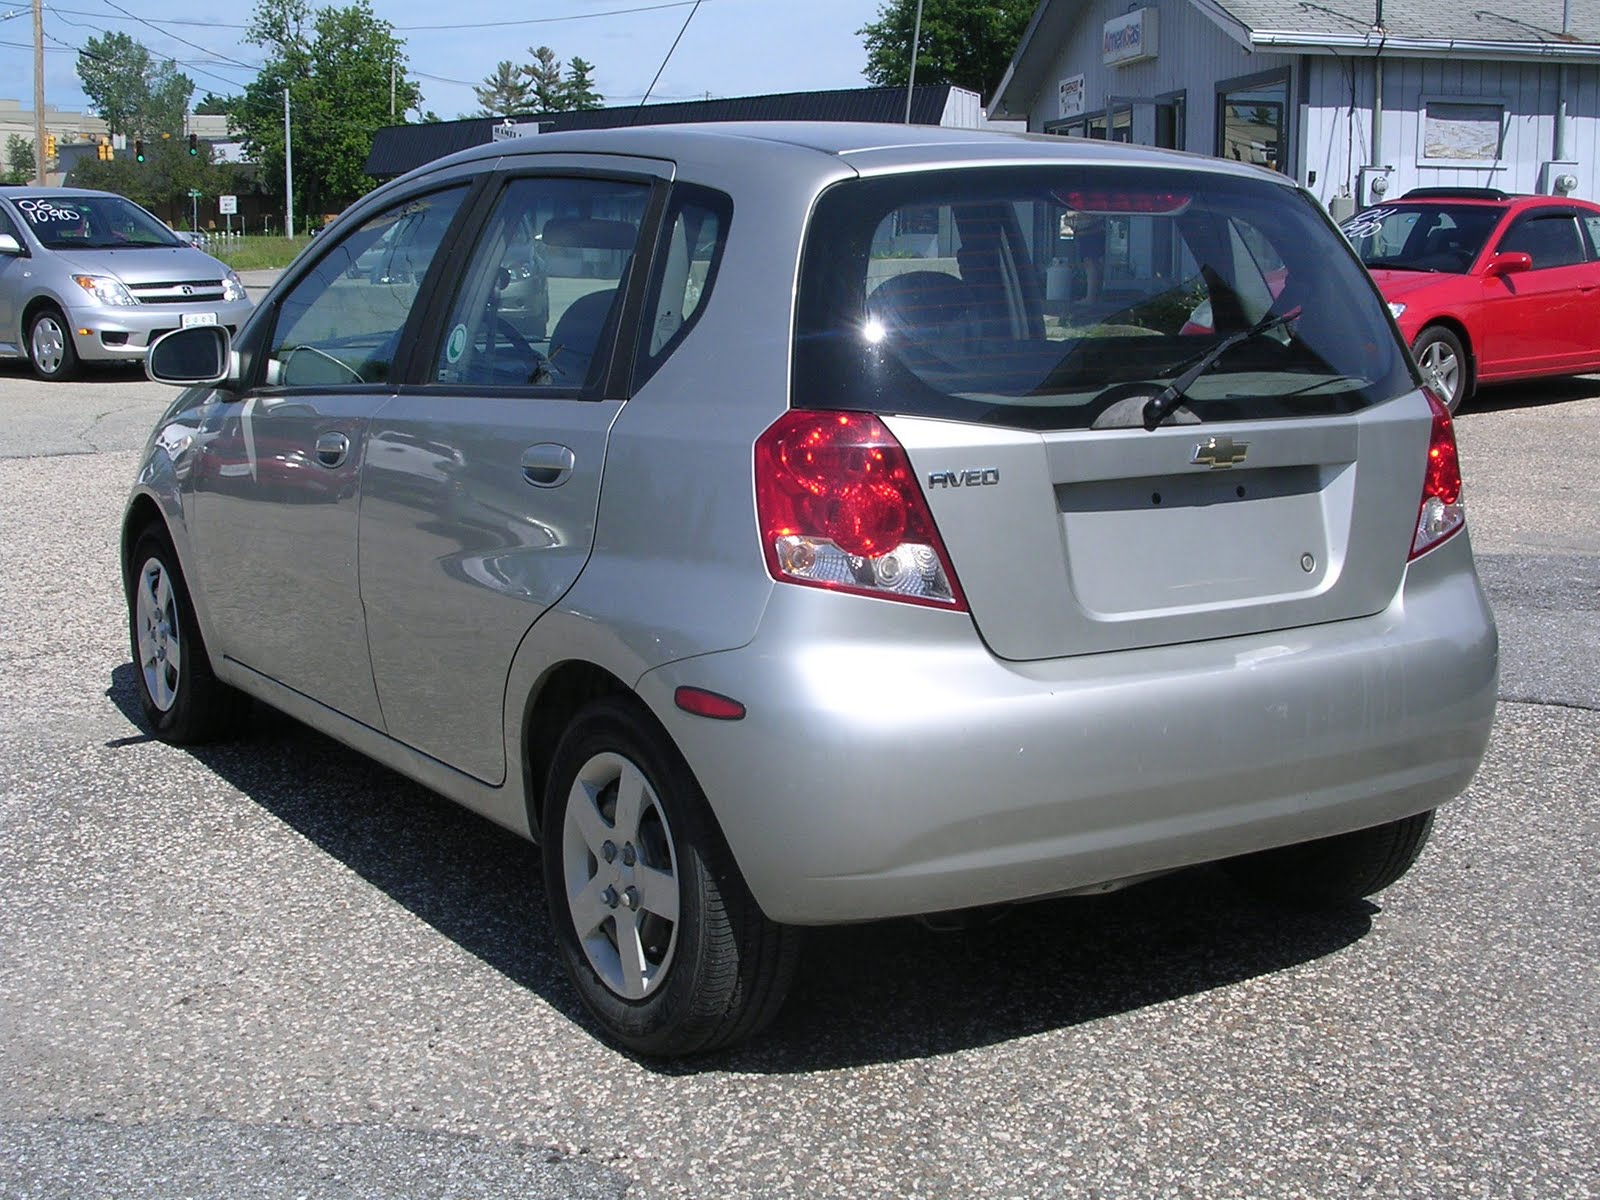 AVEO%2B3 Great Description About 2011 Chevy Aveo Recalls with Captivating Images Cars Review